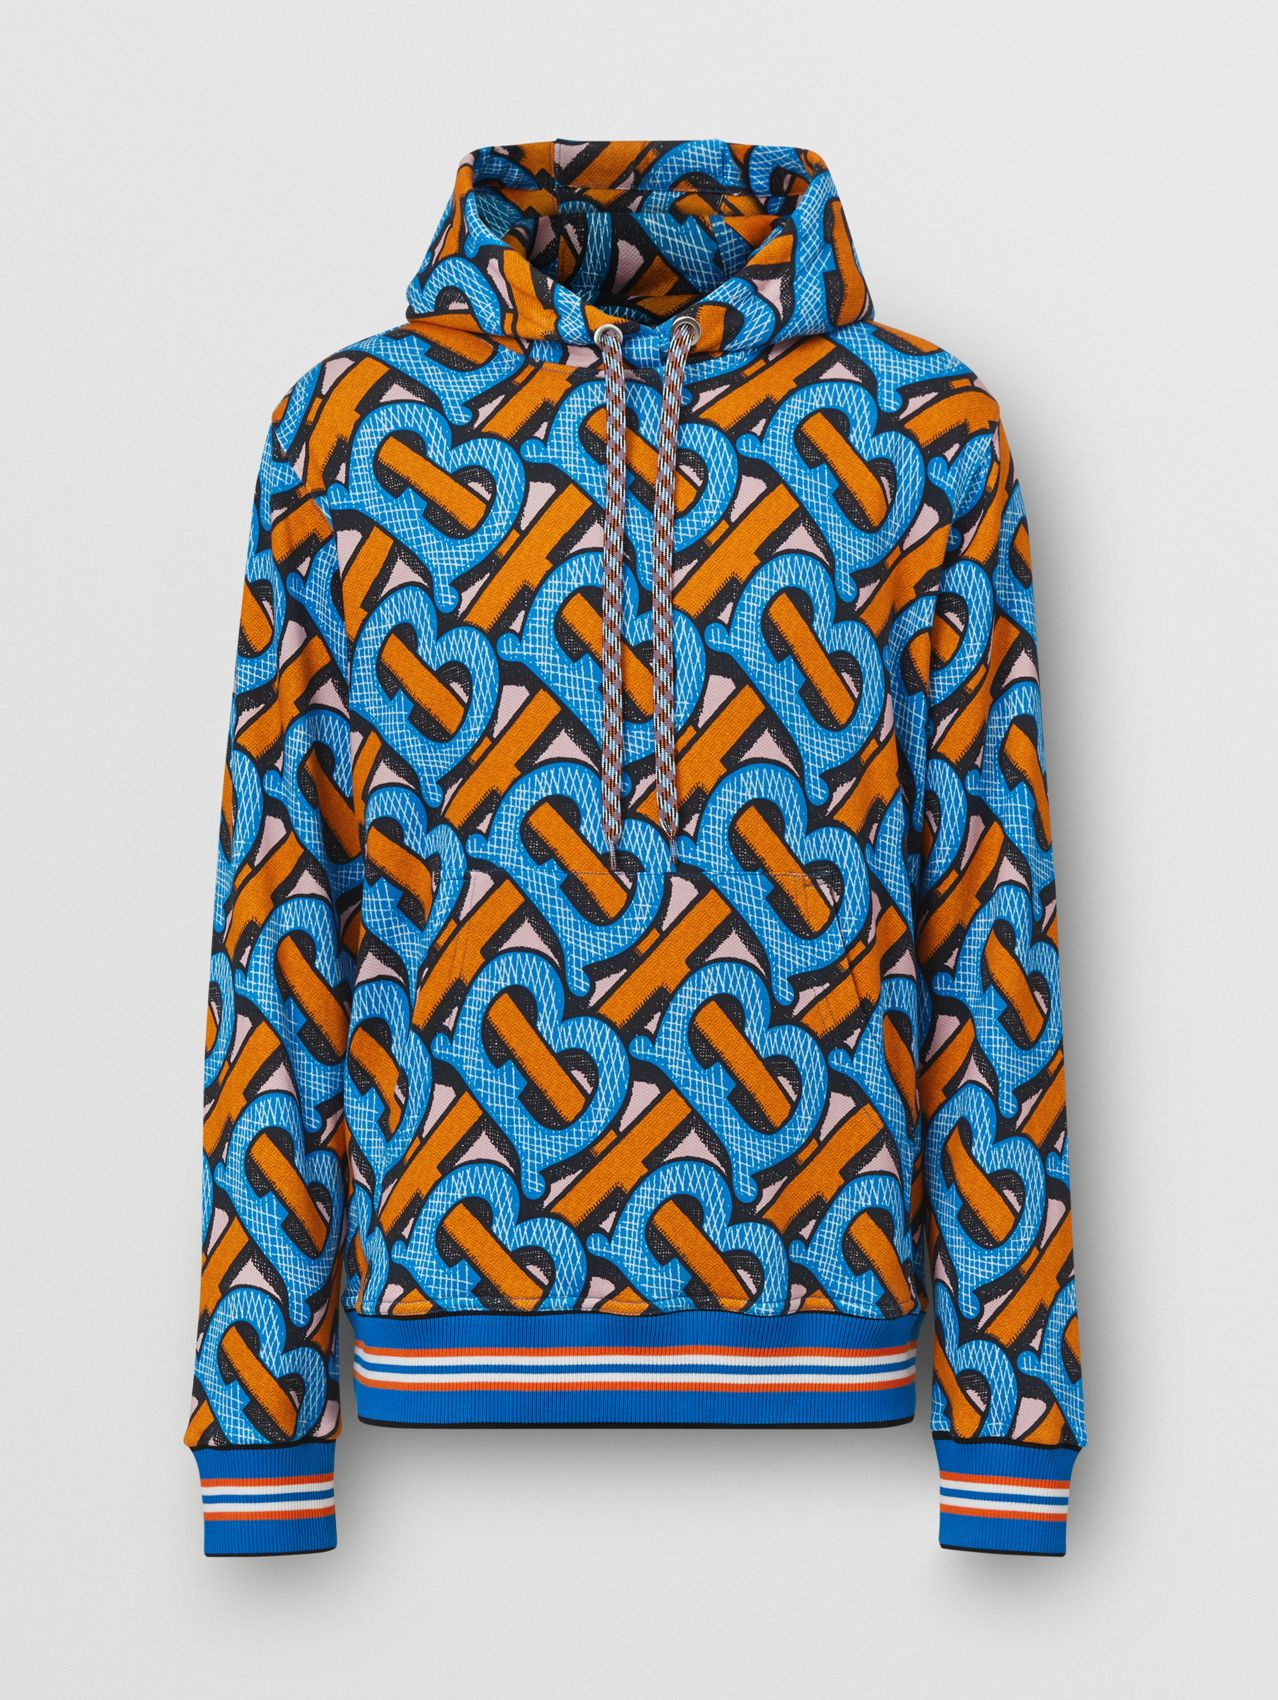 Monogram Print Cotton Hoodie – Unisex (Bright Cobalt)